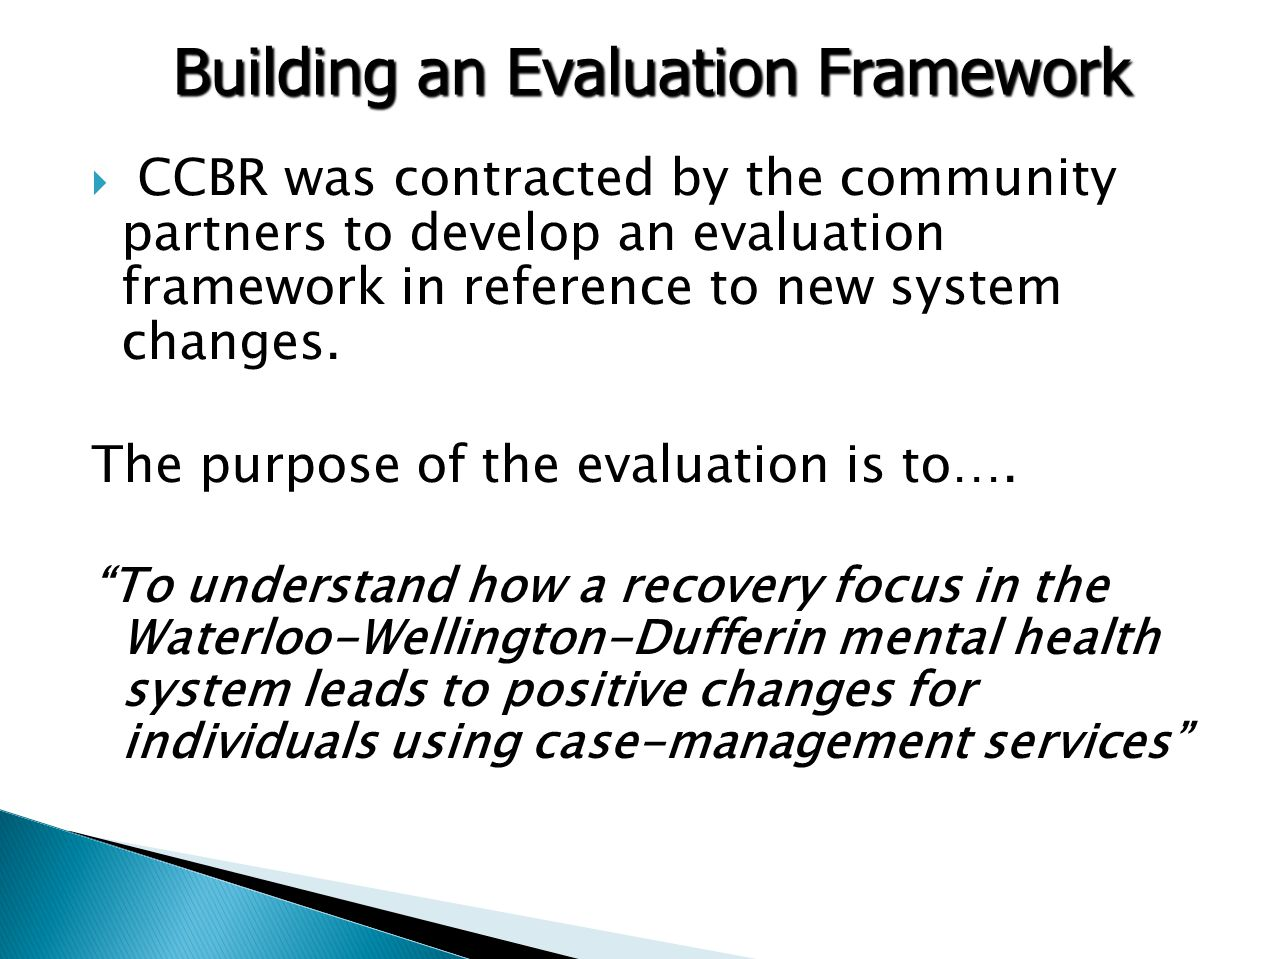  CCBR was contracted by the community partners to develop an evaluation framework in reference to new system changes.